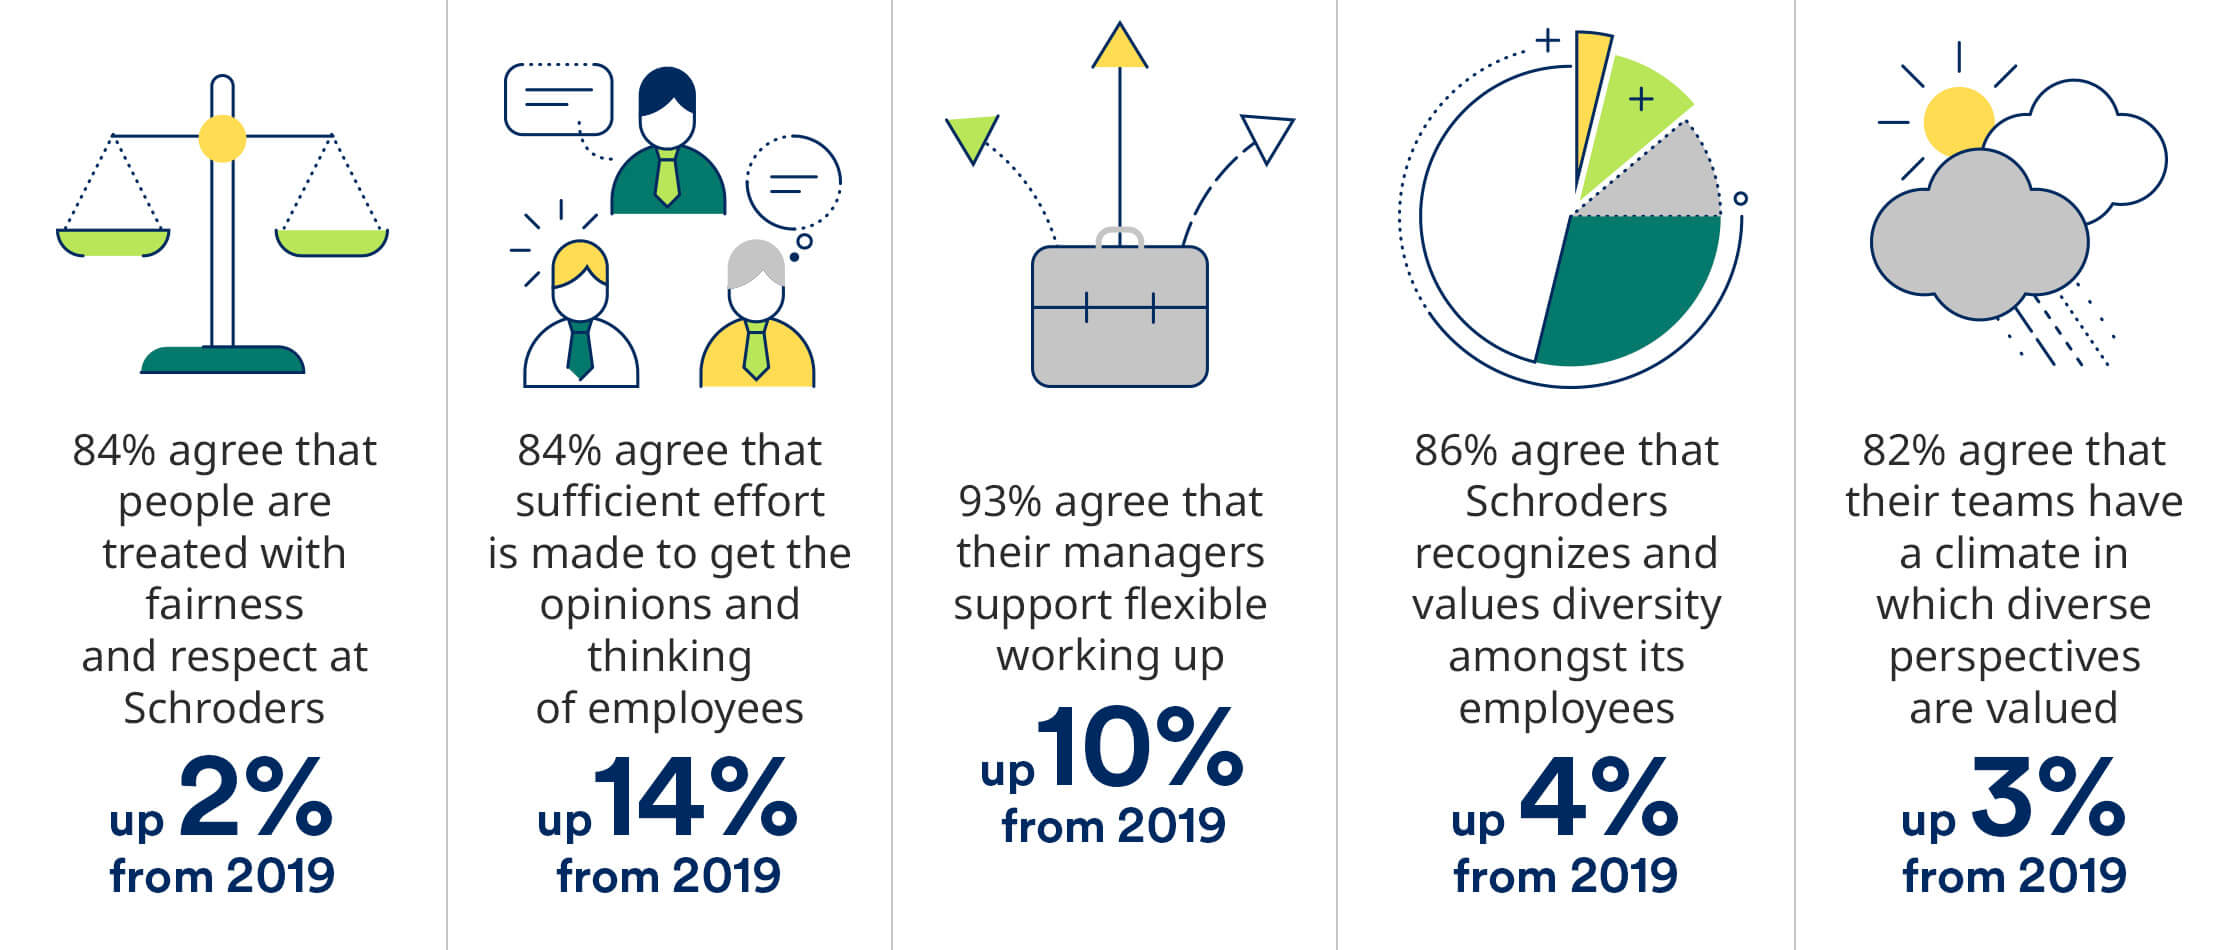 84% agree that people are treated with fairness and respect at Schroders up 2% from 2019 | 84% agree that sufficient effort is made to get the opinions and thinking of employees up 14% from 2019 | 93% agree that their managers support flexible working up 10% from 2019 | 86% agree that Schroders recognizes and values diversity amongst its employees up 4% from 2019 | 82% agree that their teams have a climate in which diverse perspectives are valued up 3% from 2019